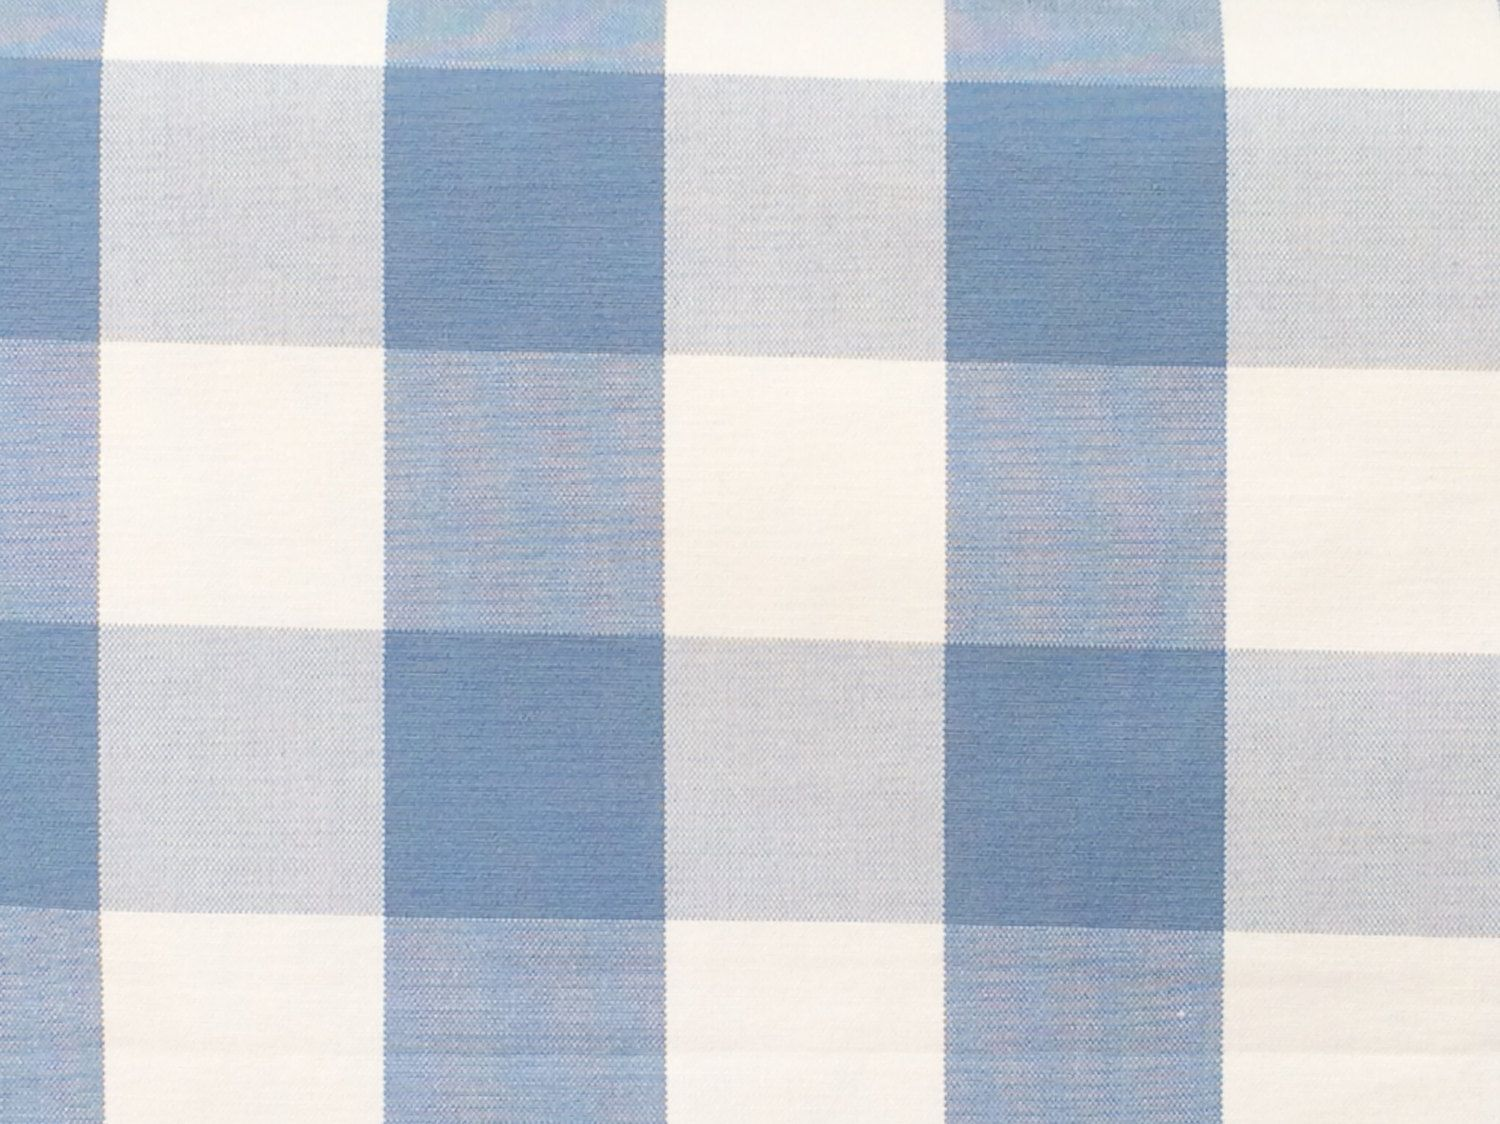 Dark Pastel Blue And White Gingham Checks Cotton Fabric By The Yard Upholstery FabricDrapery FabricShower Curtain FabricWholesale